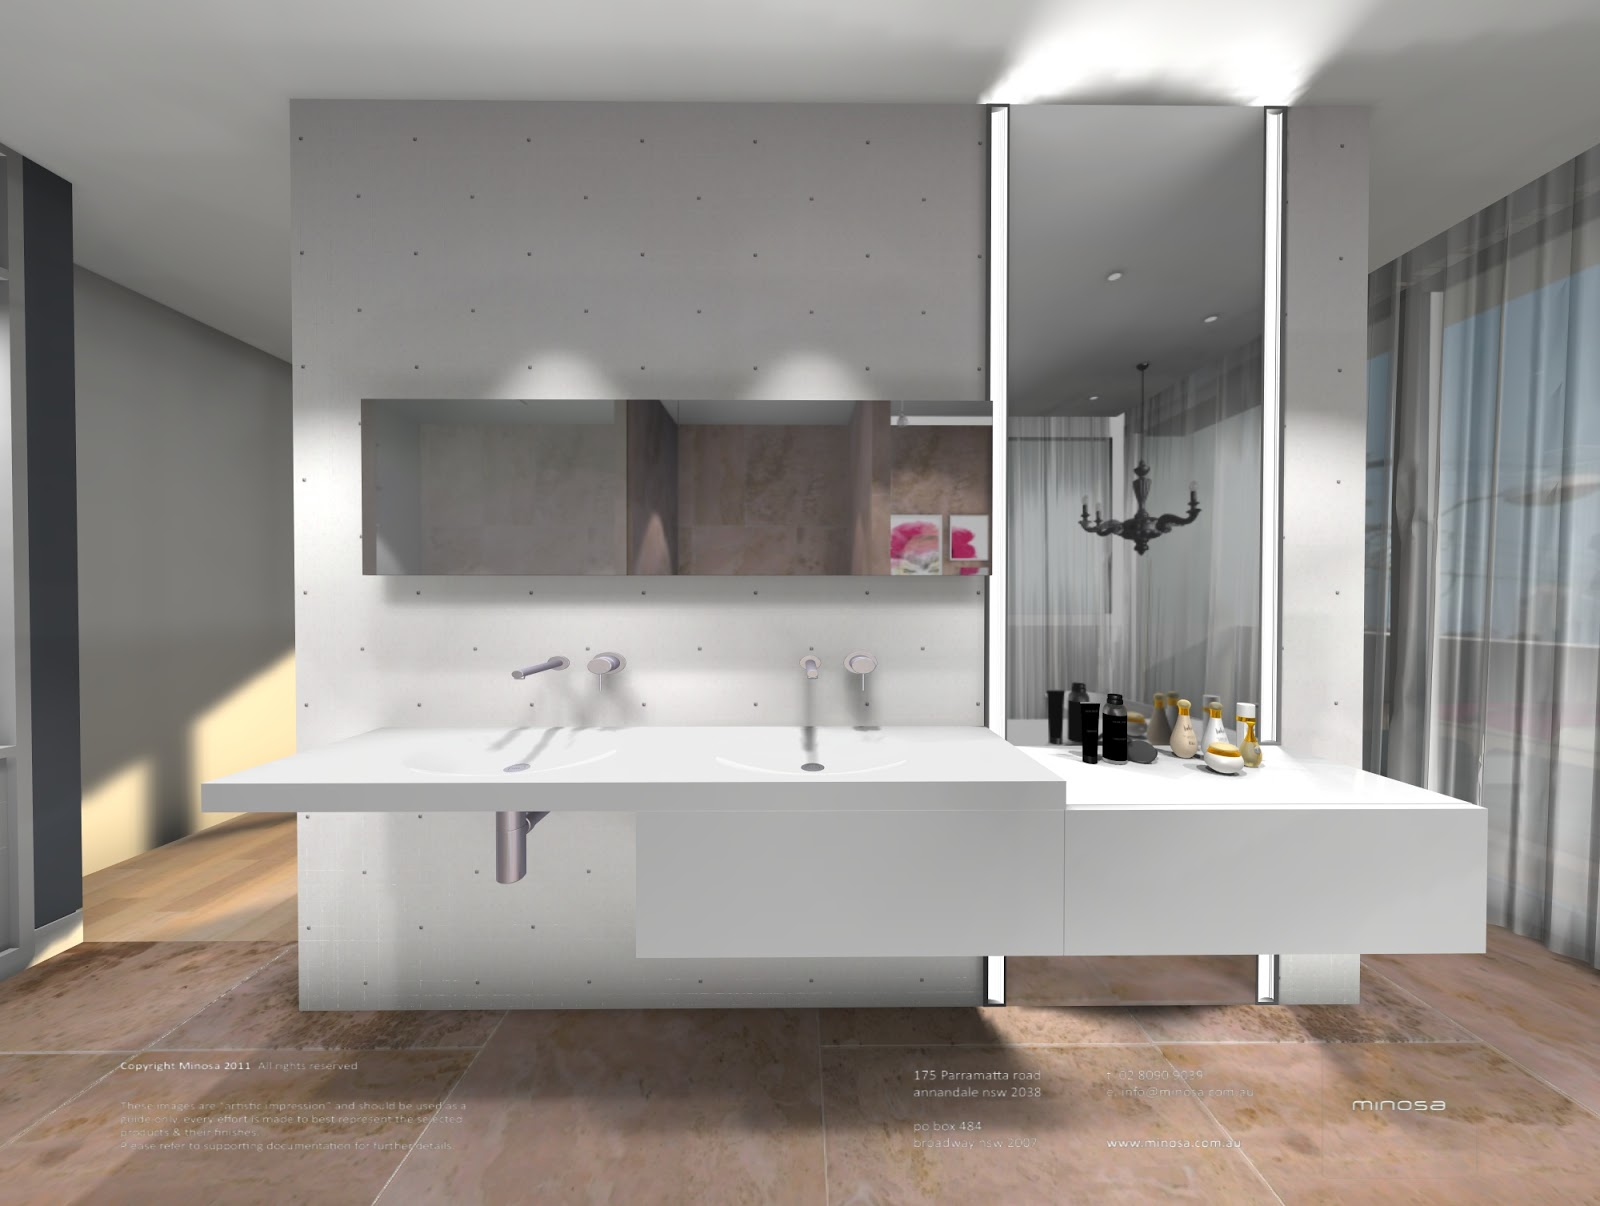 Minosa: NEW MINOSA BATHROOM DESIGN